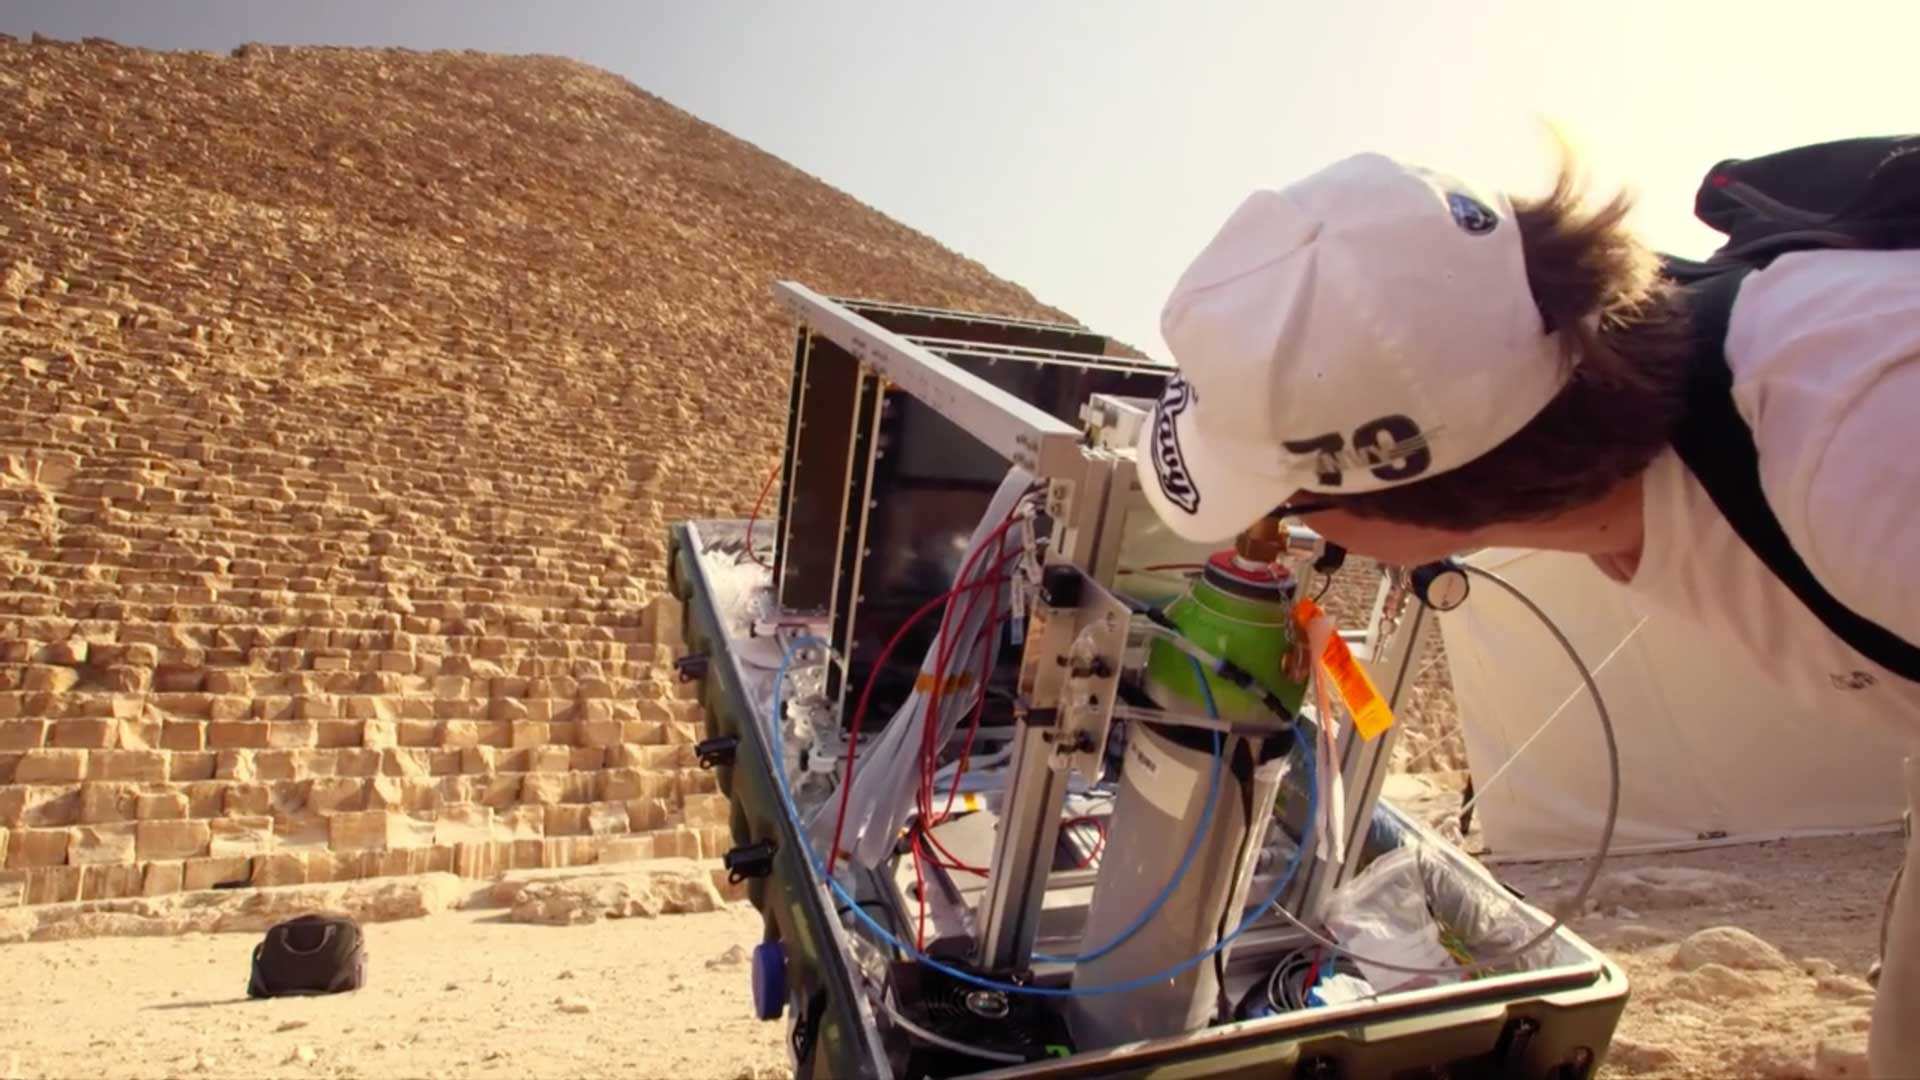 The CEA Muon telescope from Scan-Pyramids consists of 4 gas detectors installed in series. These capture the electrical signal that occurs when a muon passes through the pyramid (Image: © ScanPyramids)